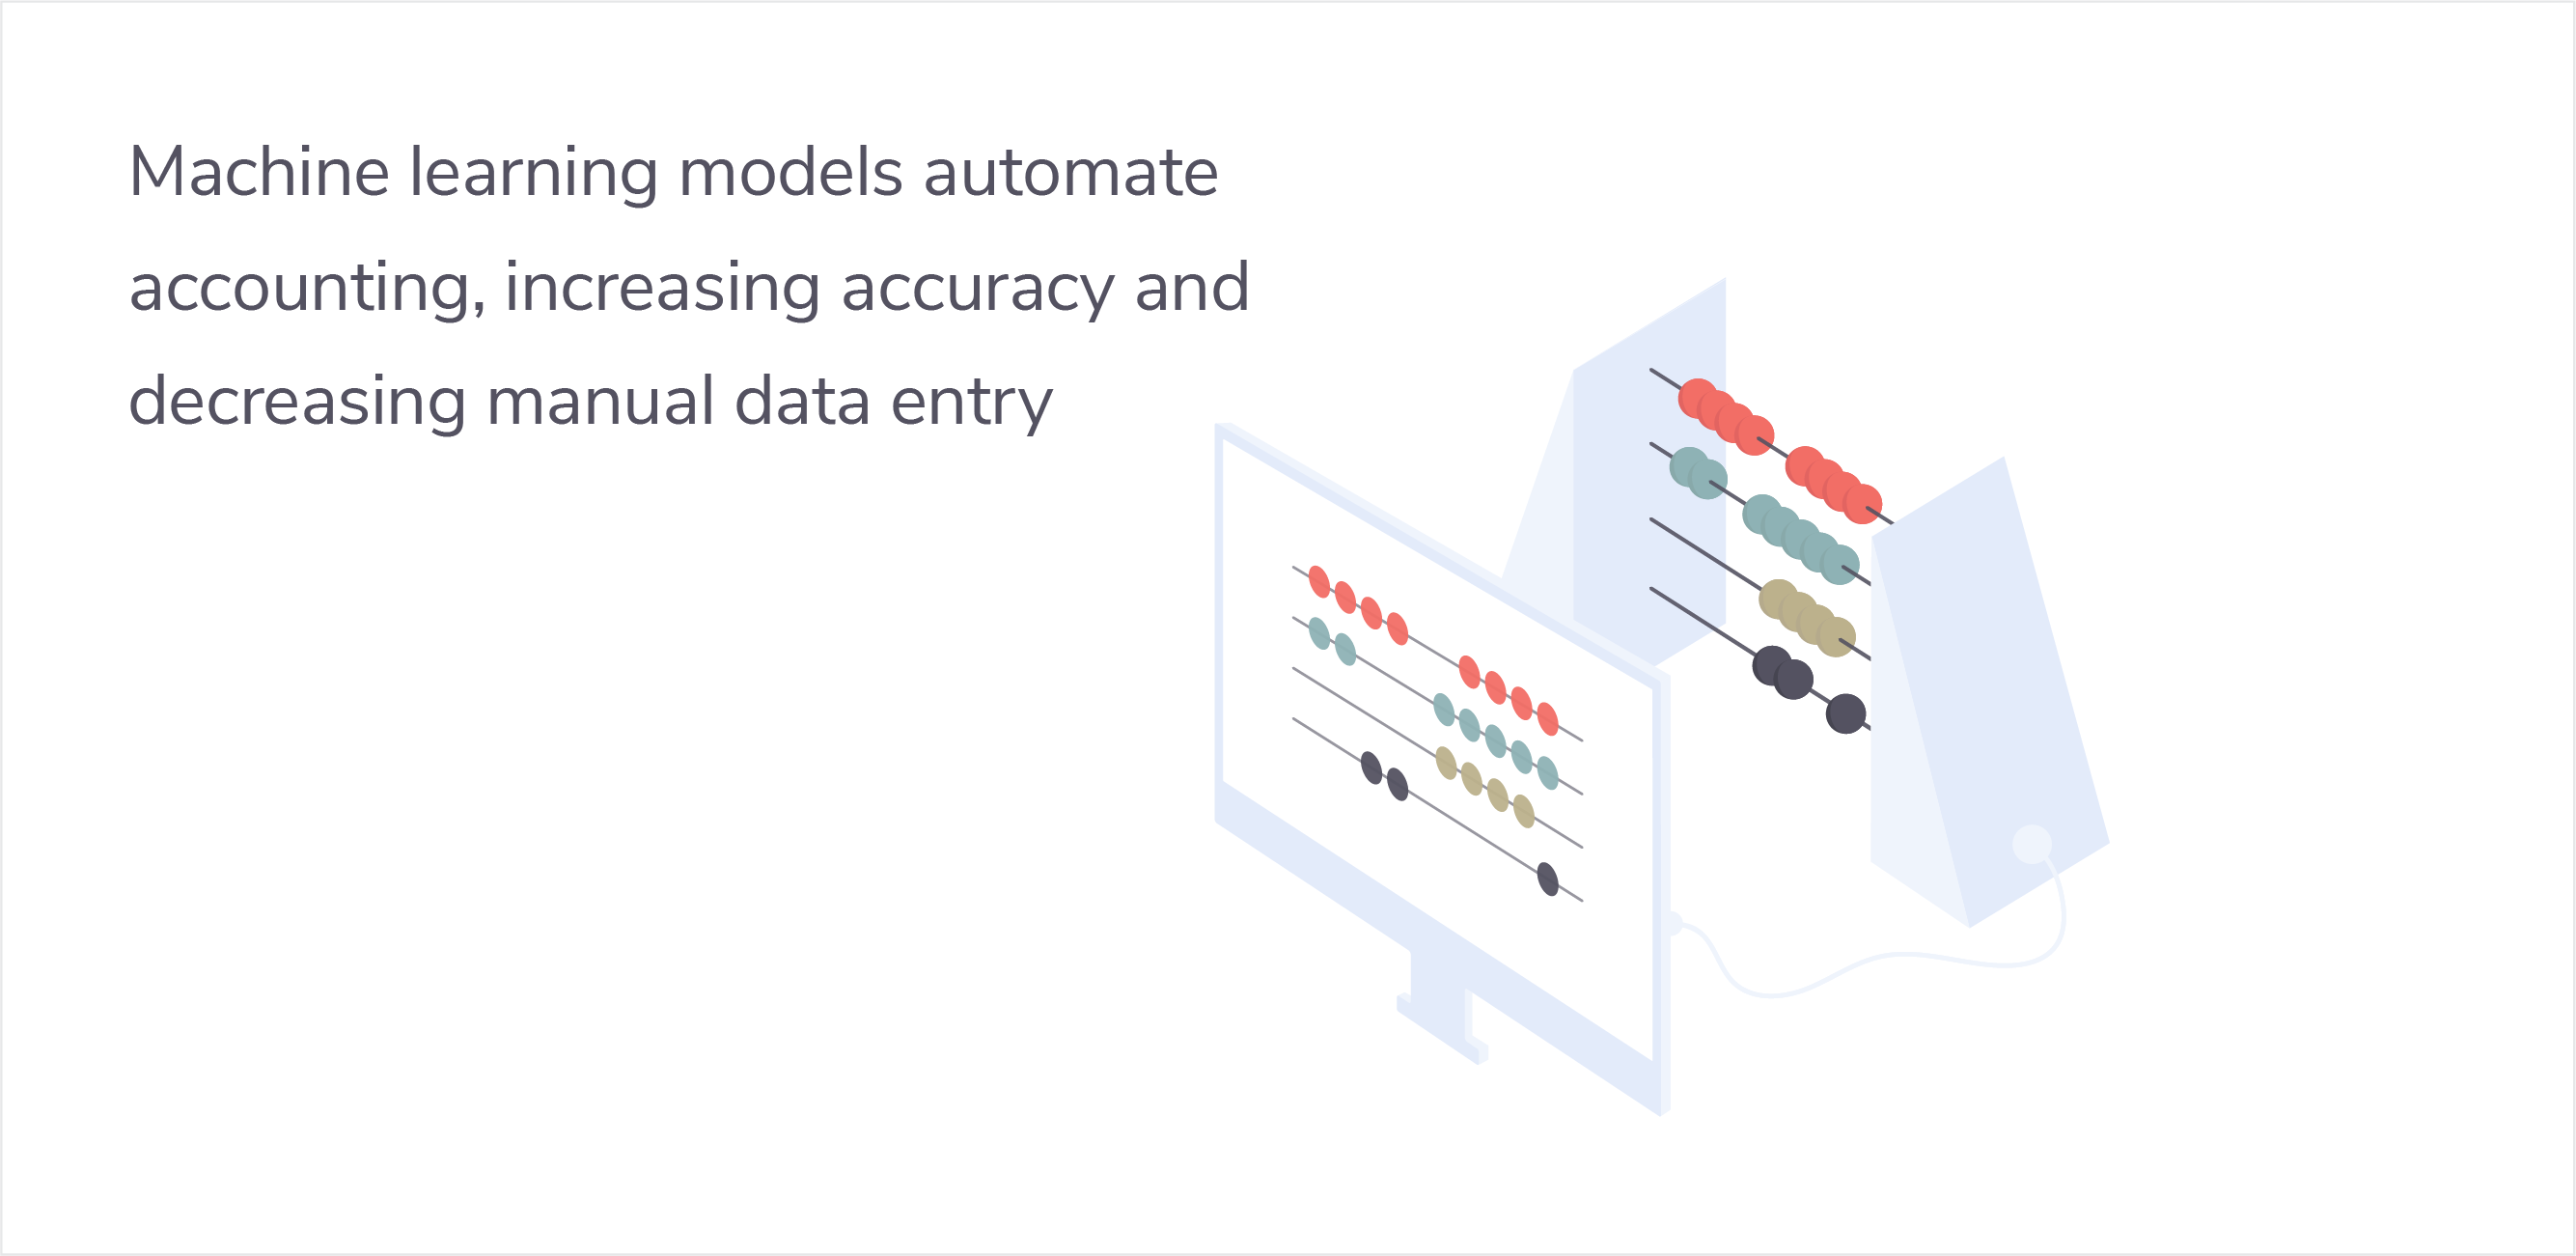 Machine learning models automate accounting